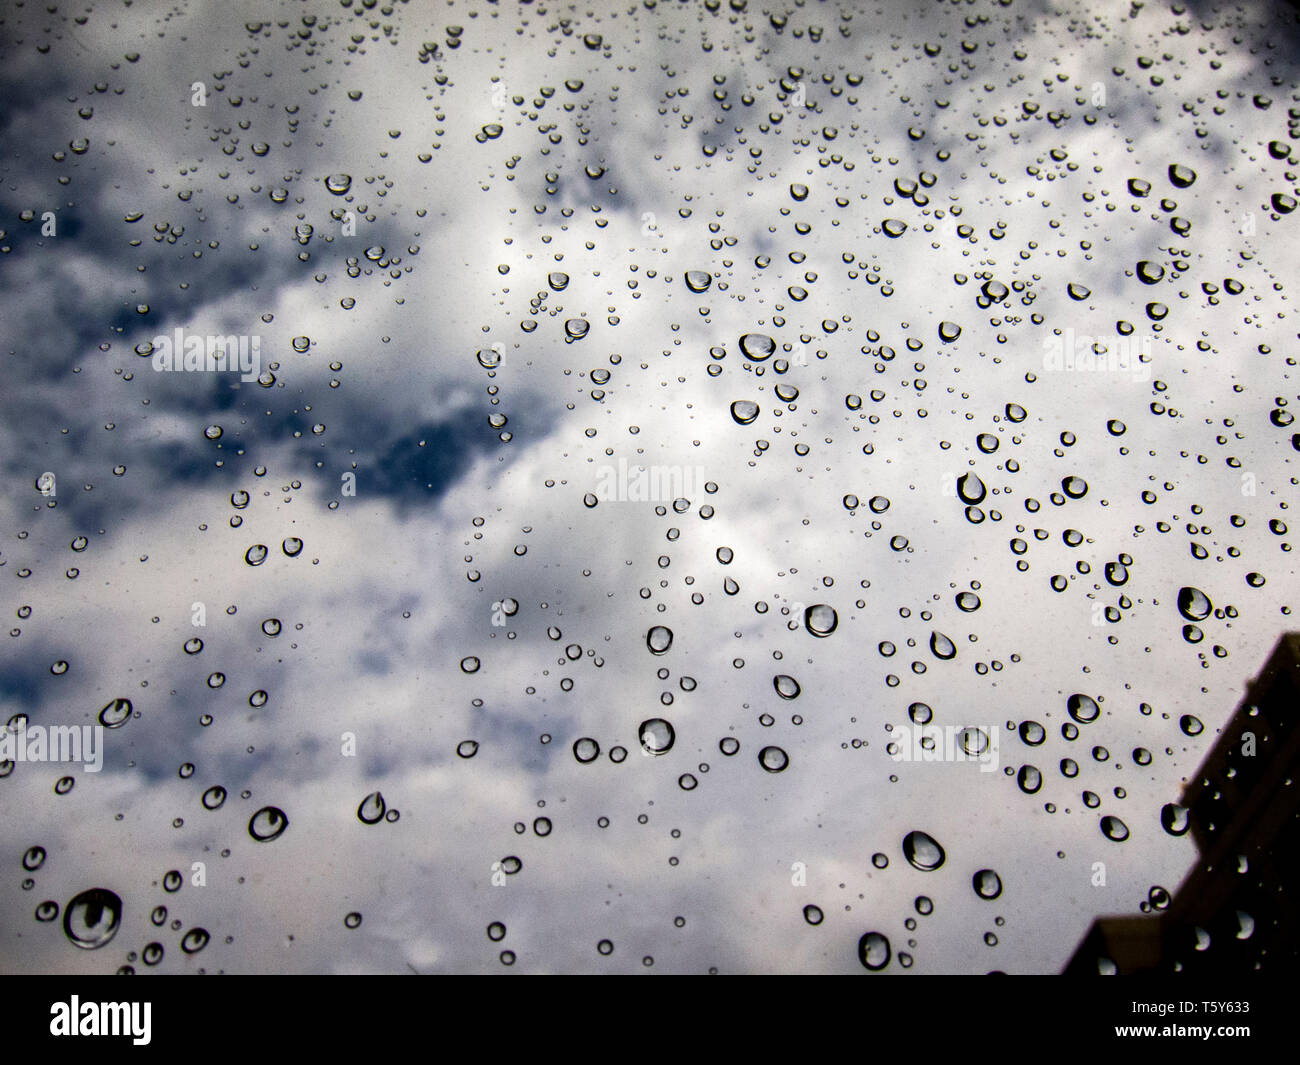 droppletdrops of water on glass reflecting the clouds - Stock Image